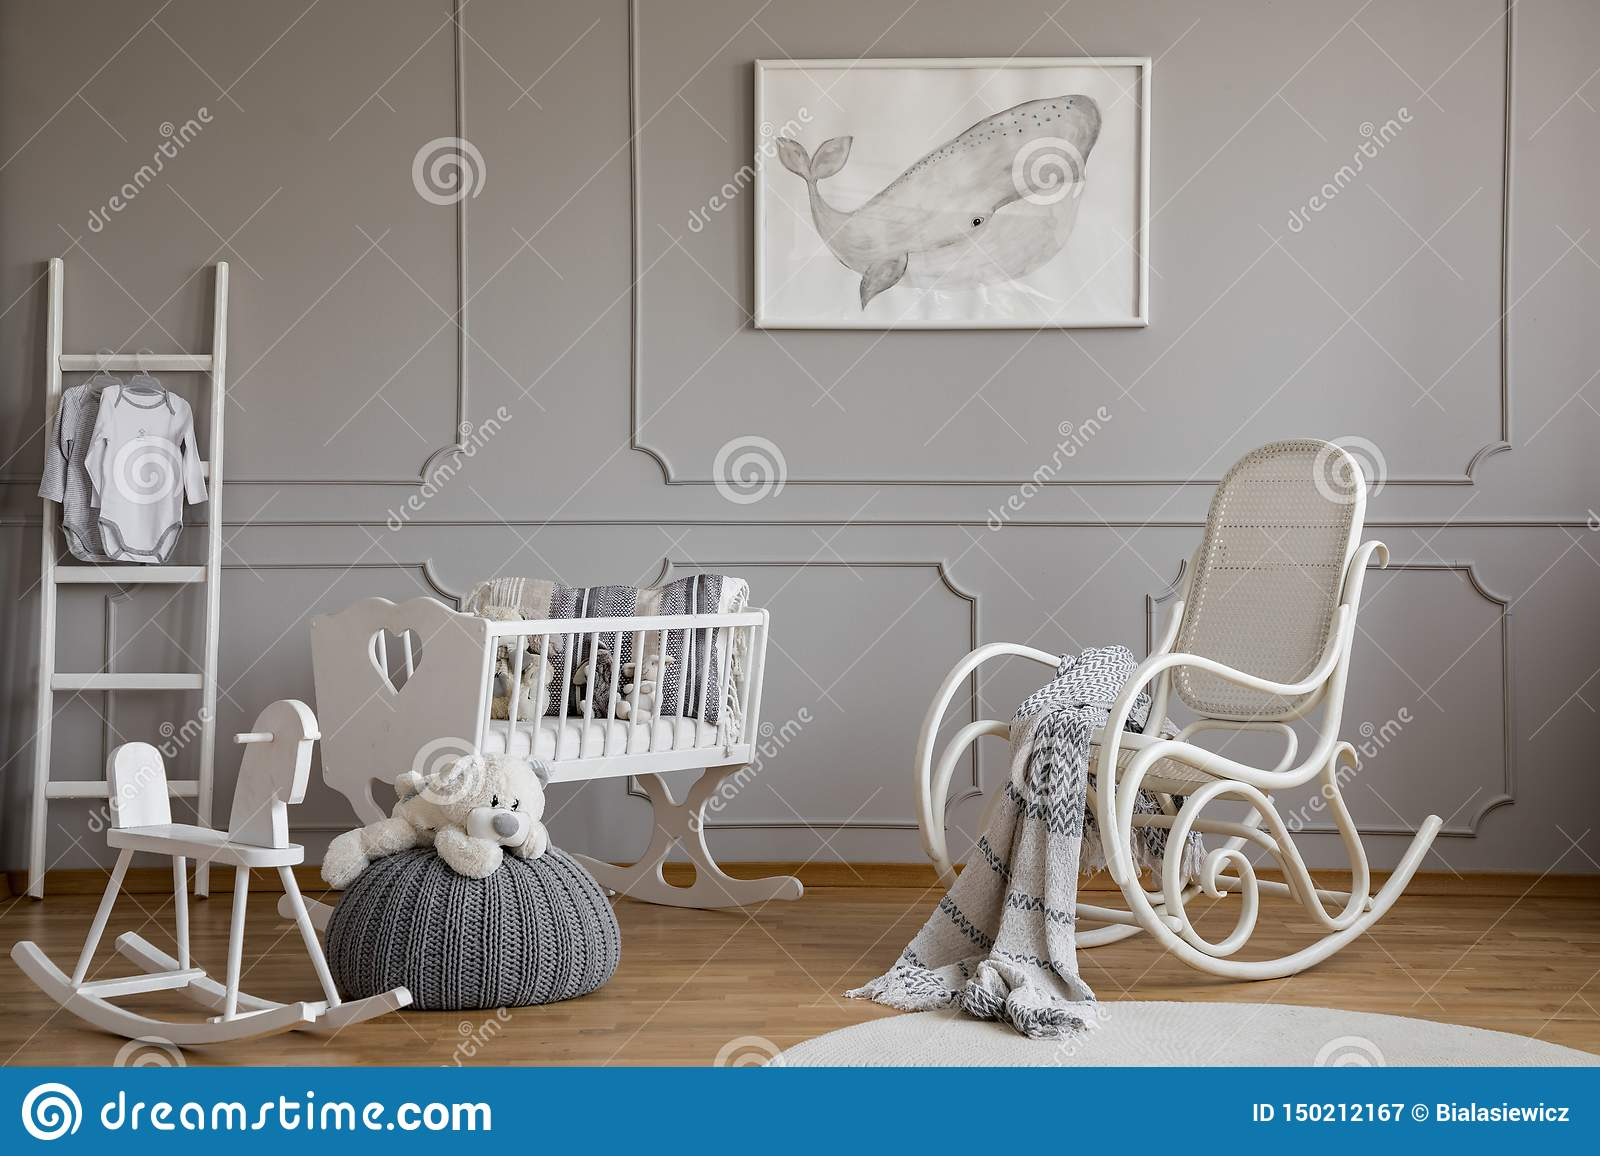 Remarkable Grey Whale On Poster In Classy Baby Room Interior With White Pabps2019 Chair Design Images Pabps2019Com